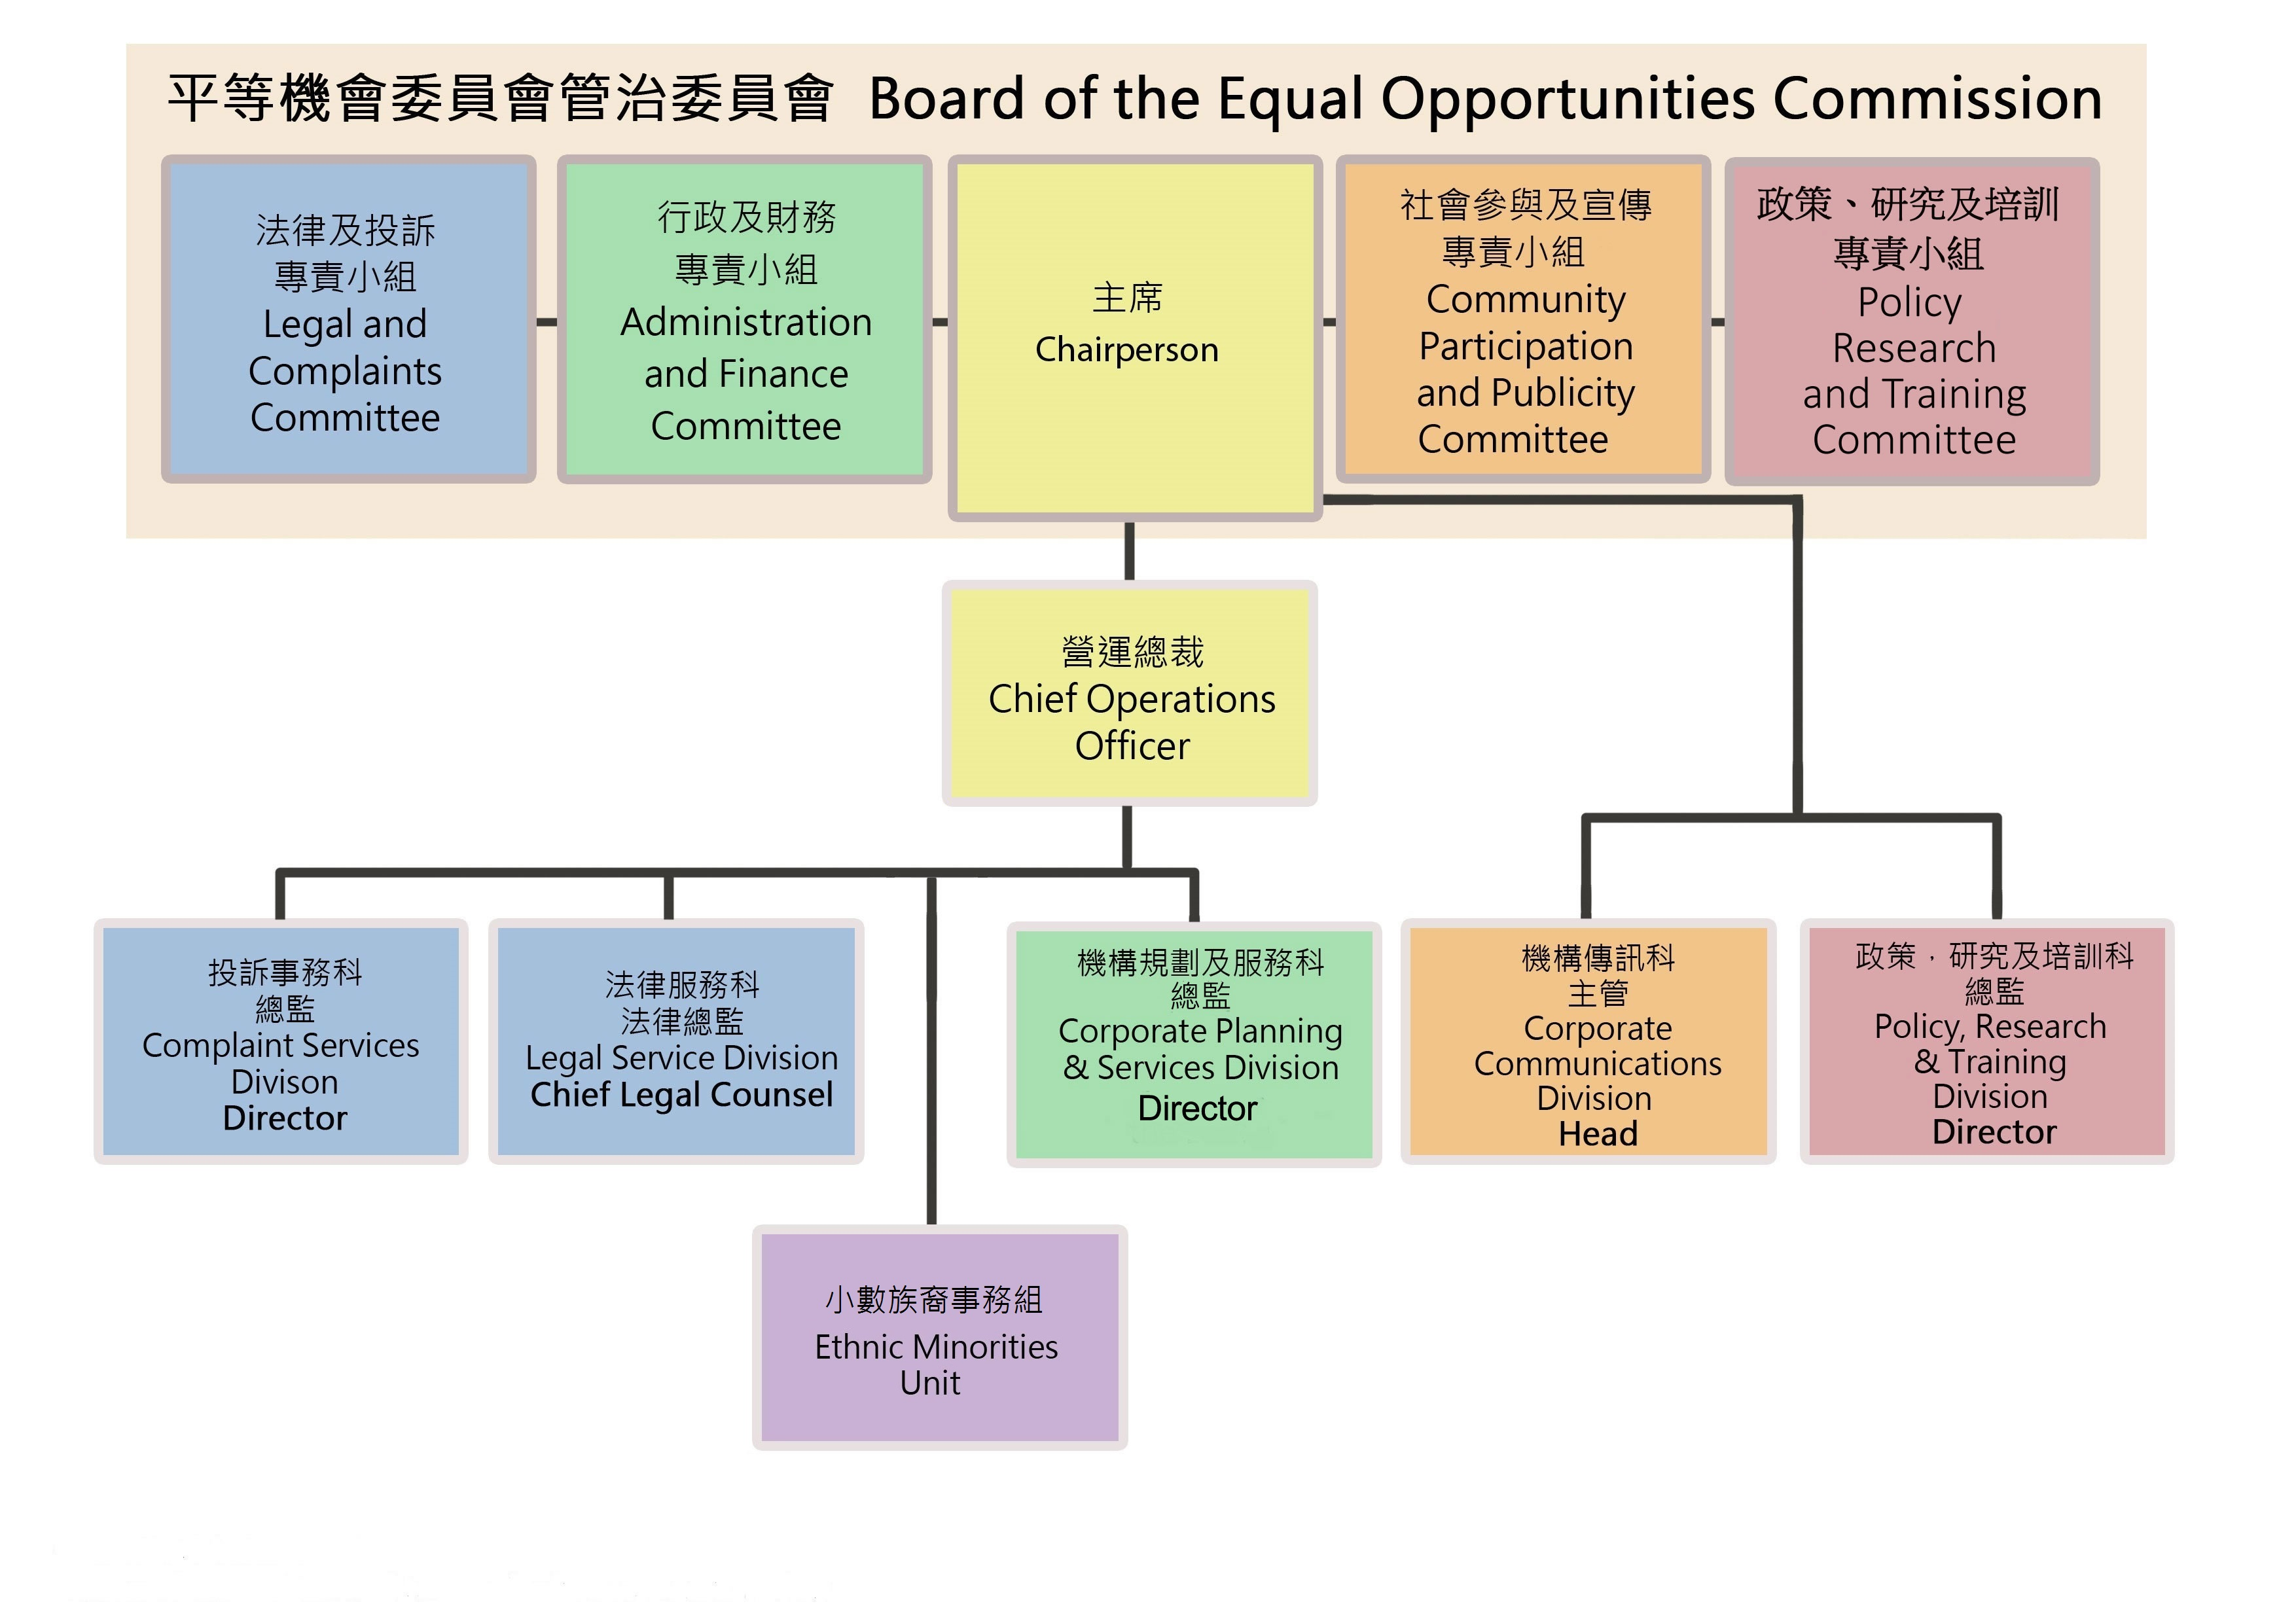 Organisational Structure of the Equal Opportunities Commission